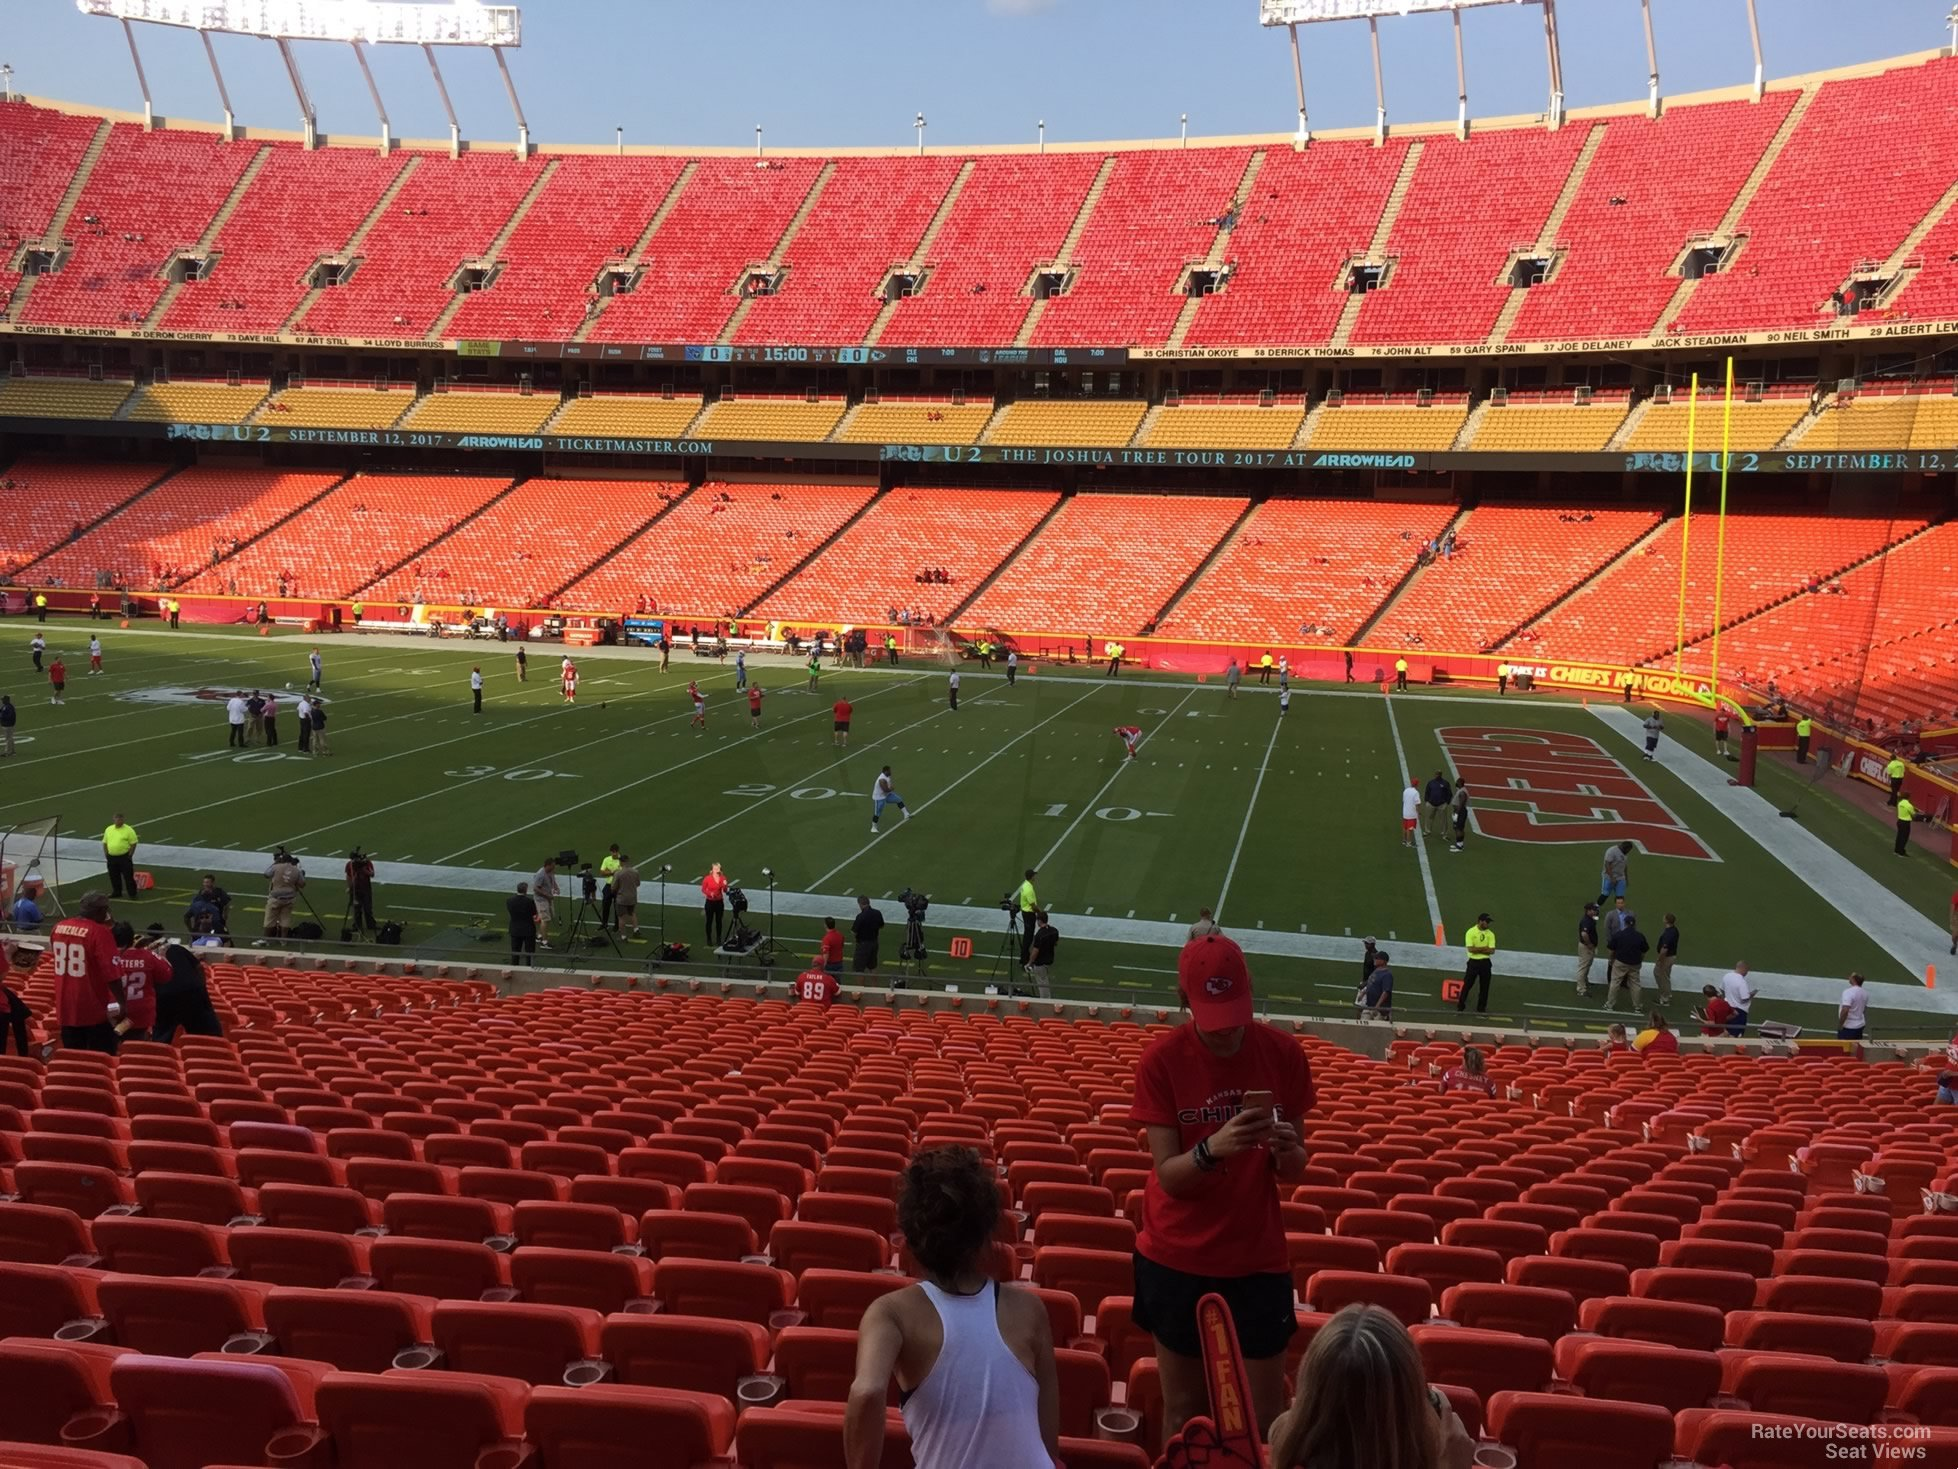 Seat View for Arrowhead Stadium Section 116, Row 30